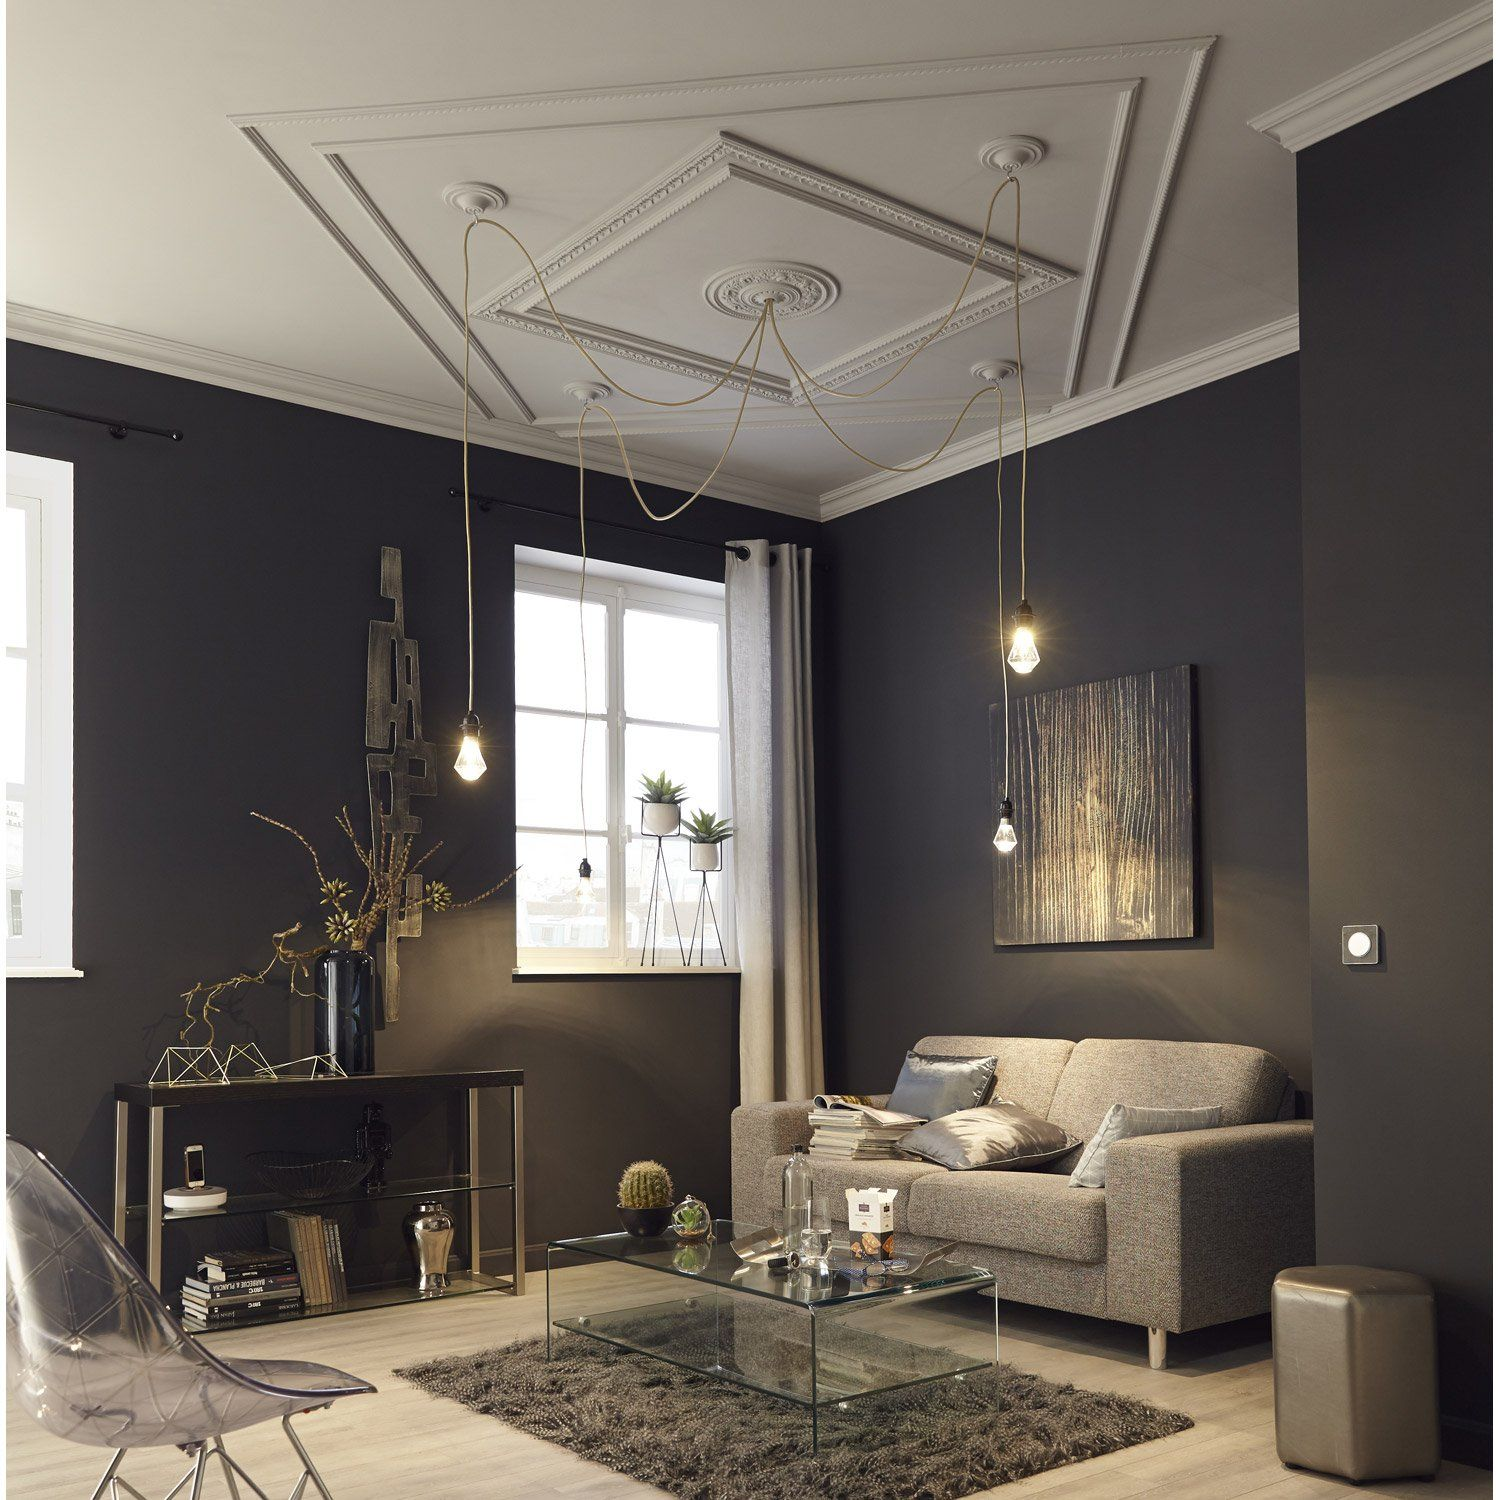 moulure de plafond d101 polystyr ne extrud 8 x 200 cm. Black Bedroom Furniture Sets. Home Design Ideas